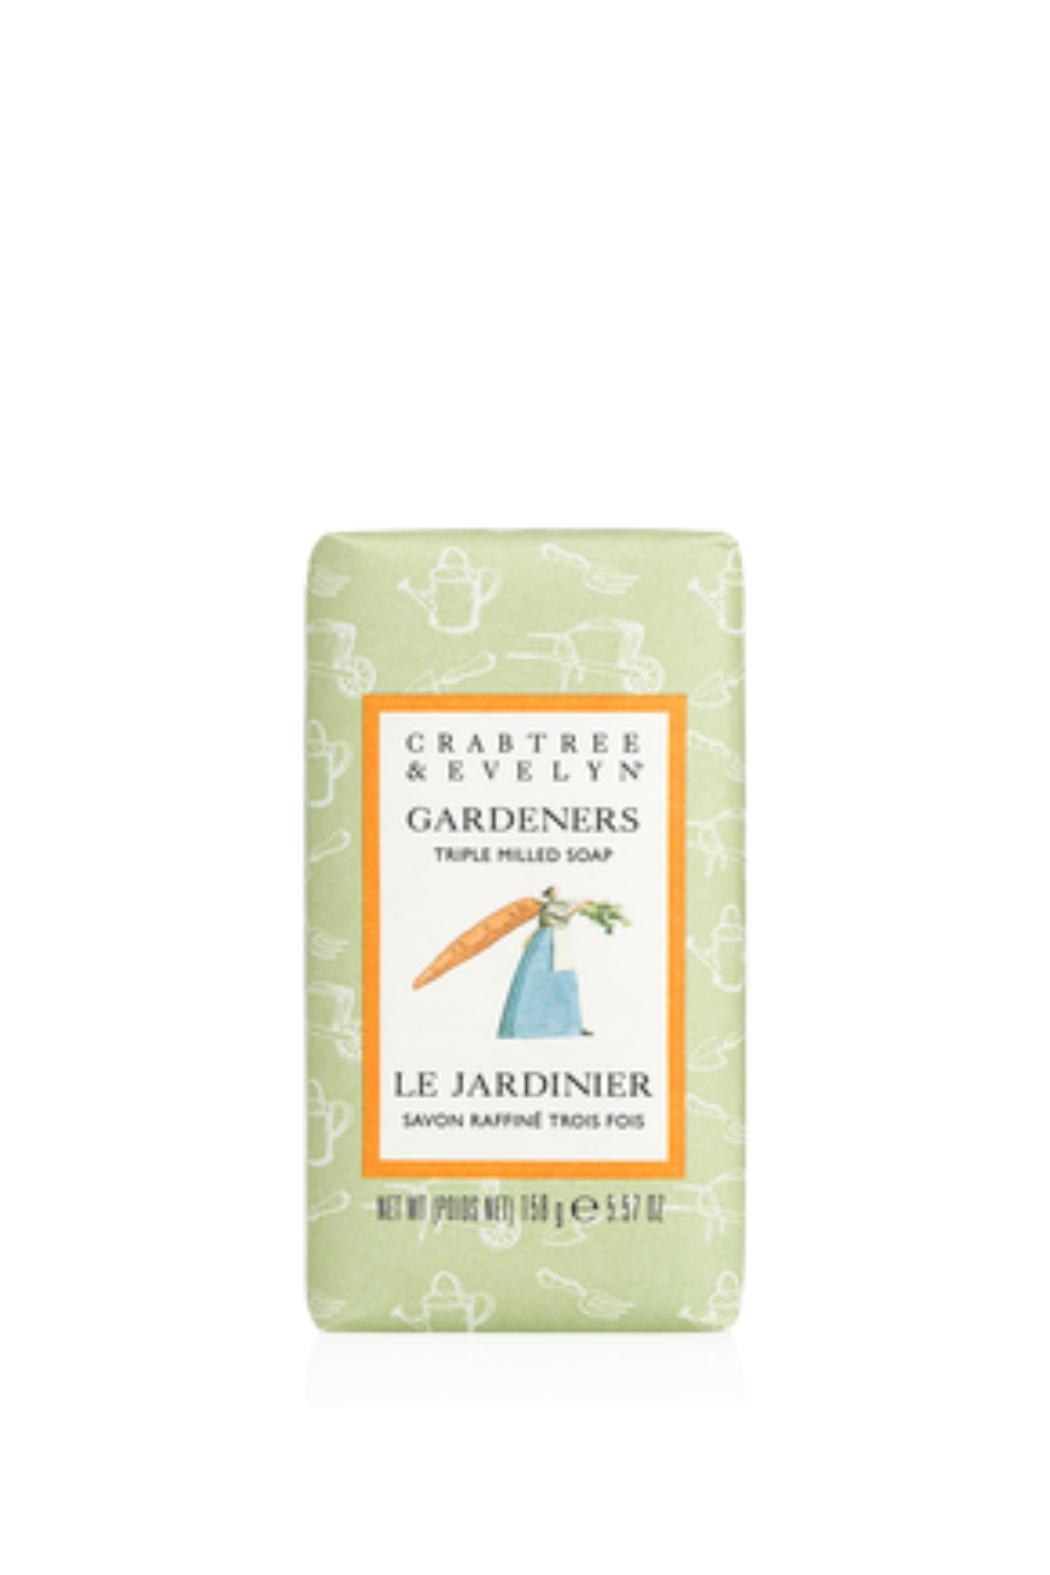 Crabtree & Evelyn Gardners Bar Soap - Main Image